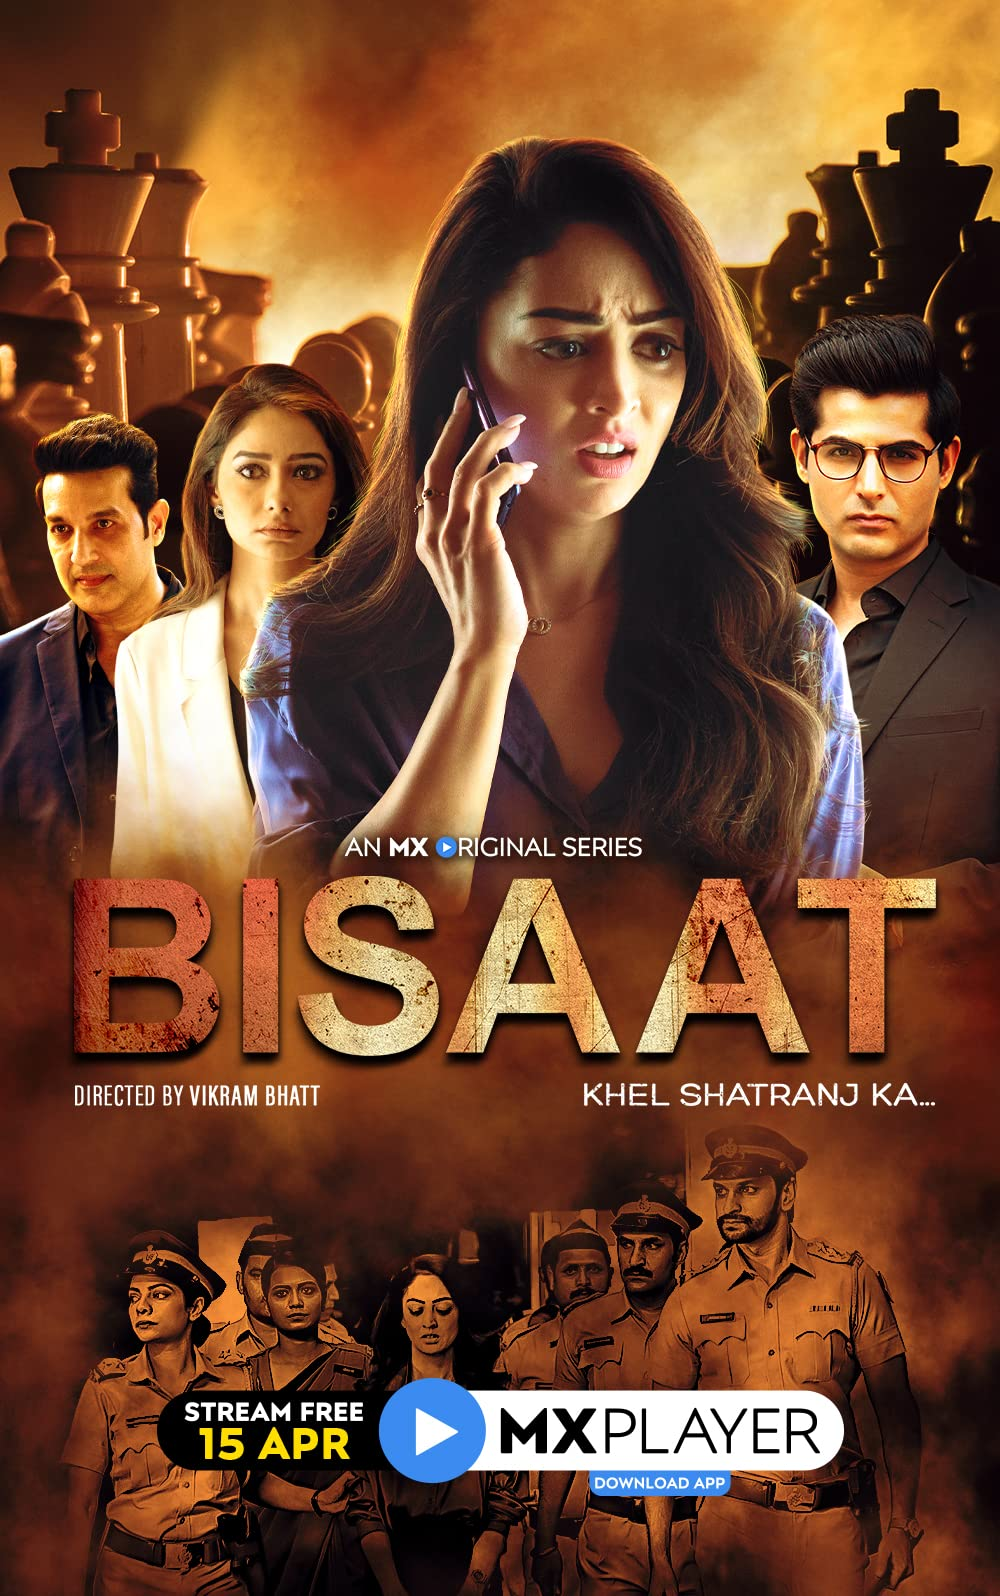 Bisaat: Khel Shatranj Ka 2021 S01 Hindi MX Original Complete Web Series 700MB HDRip Download